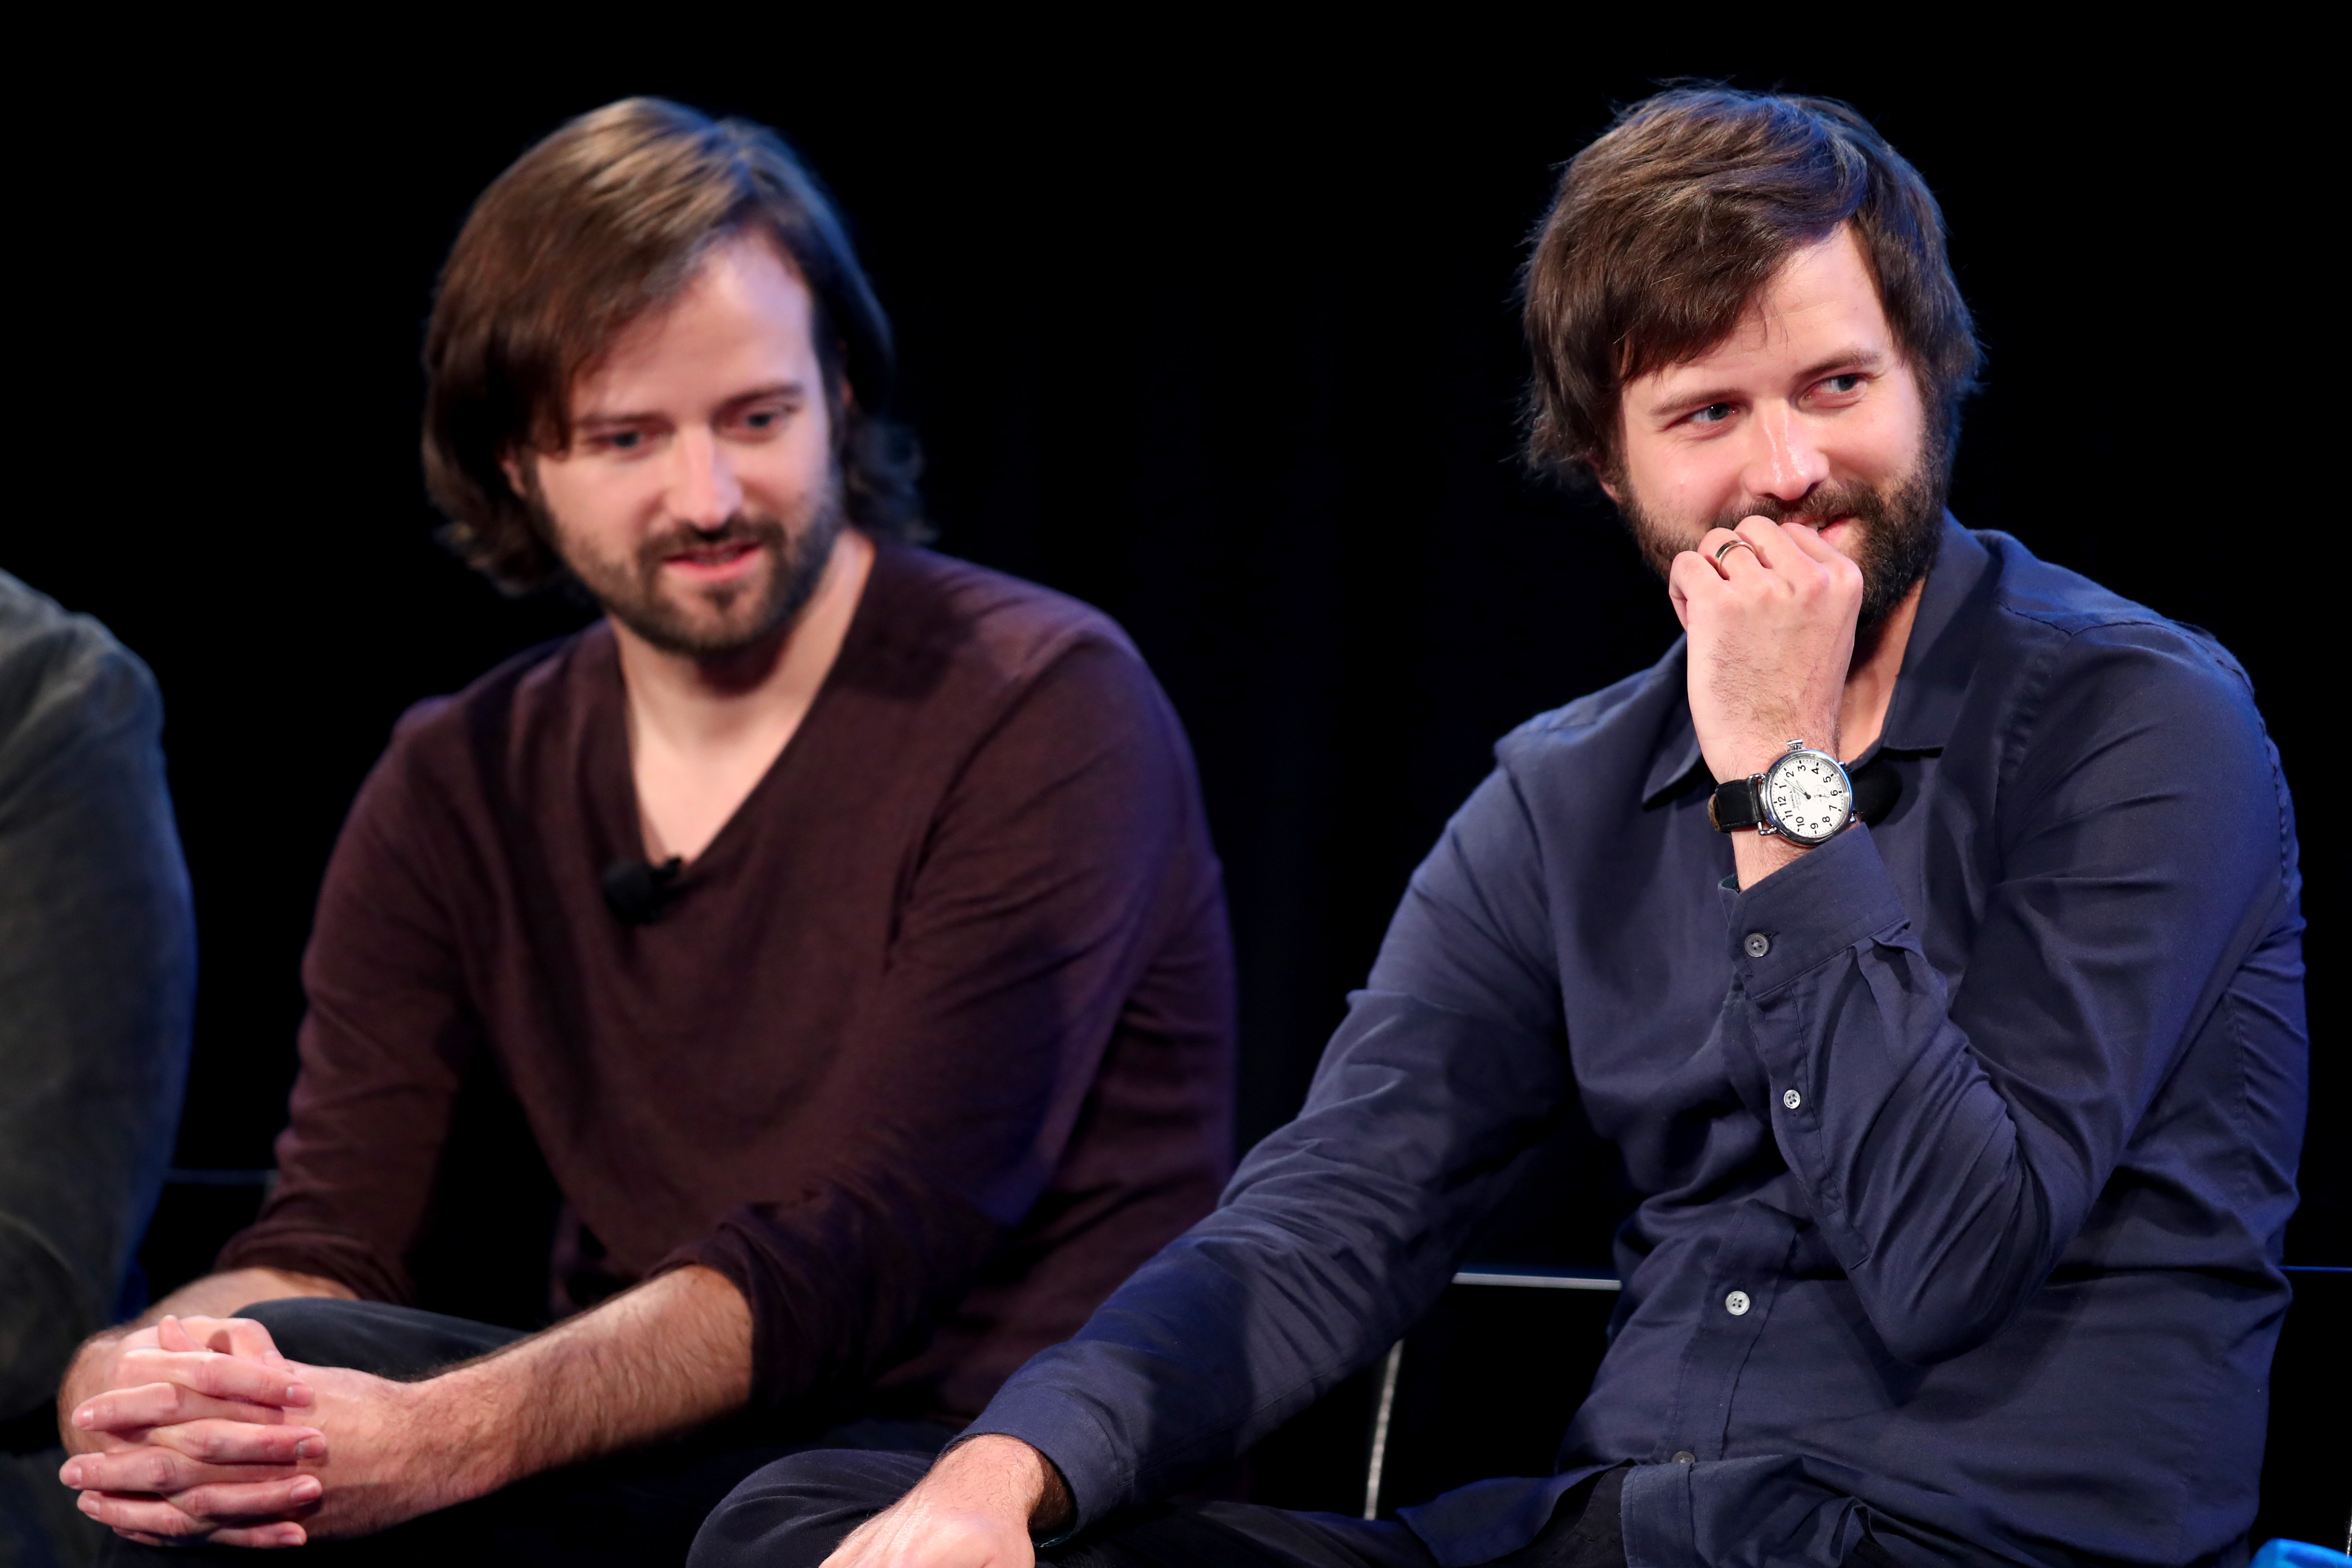 Matt and Ross Duffer Stranger Things creators